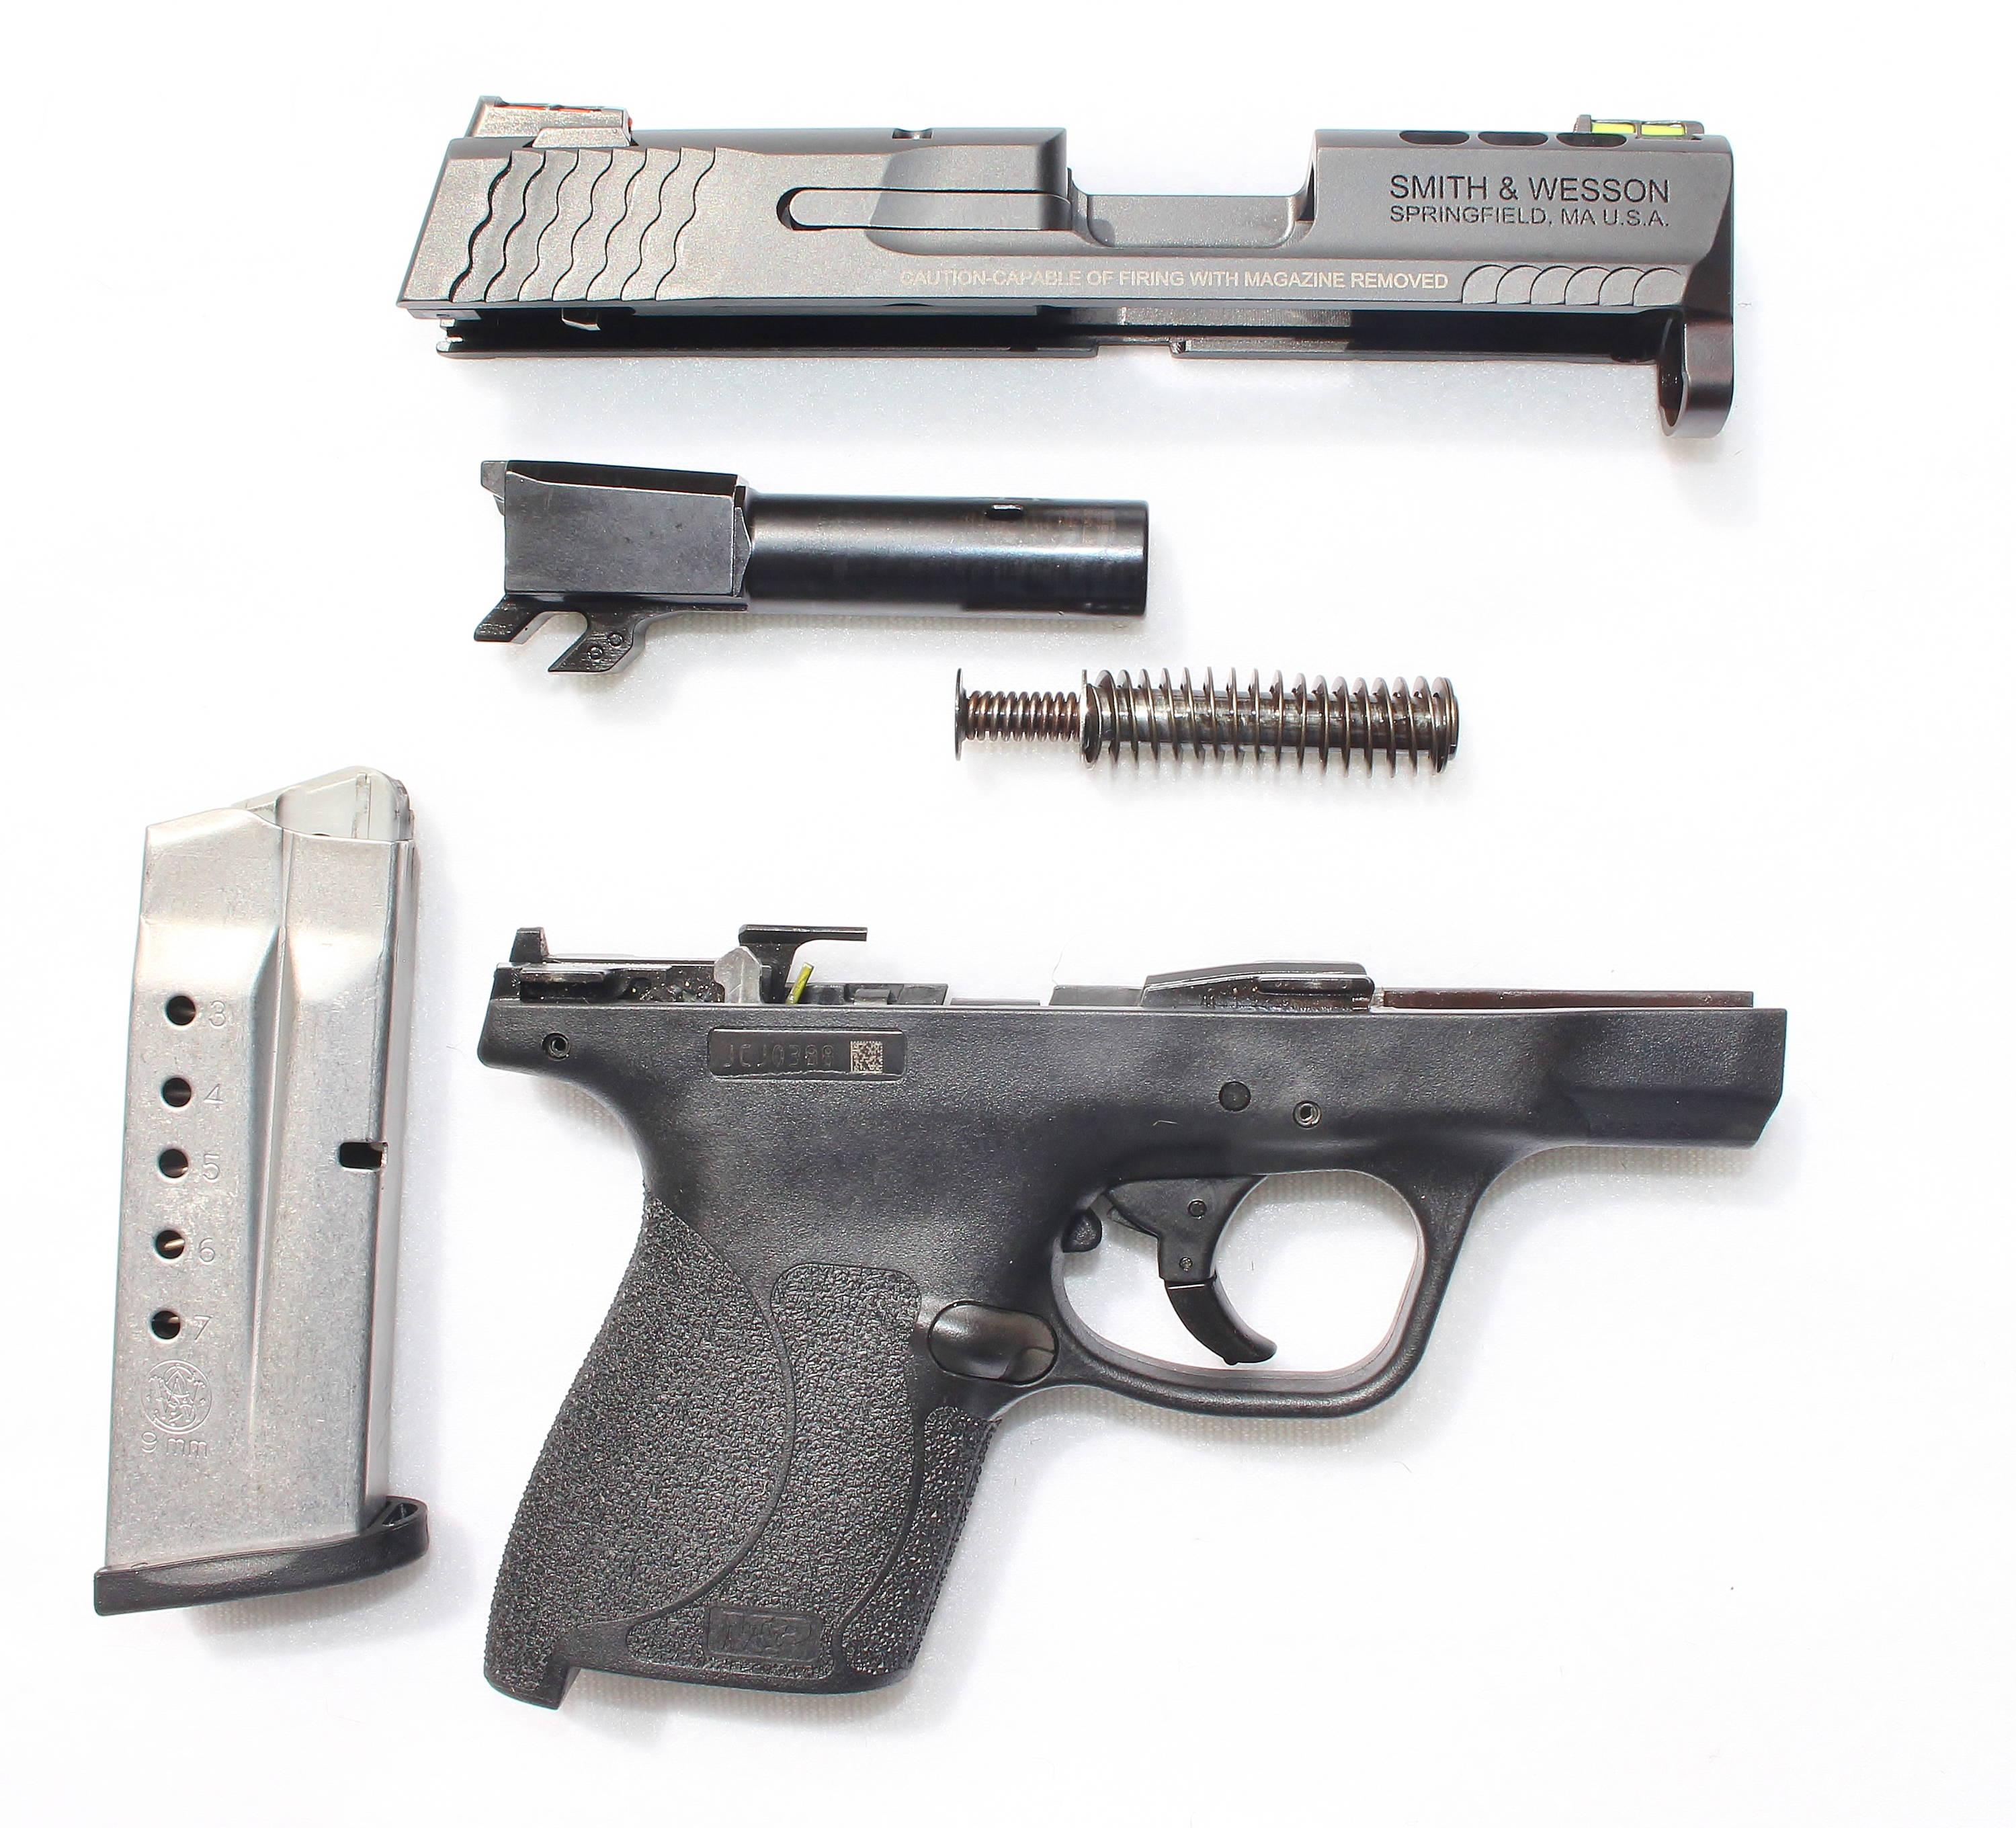 Disassembled Smith & Wesson M&P Shield